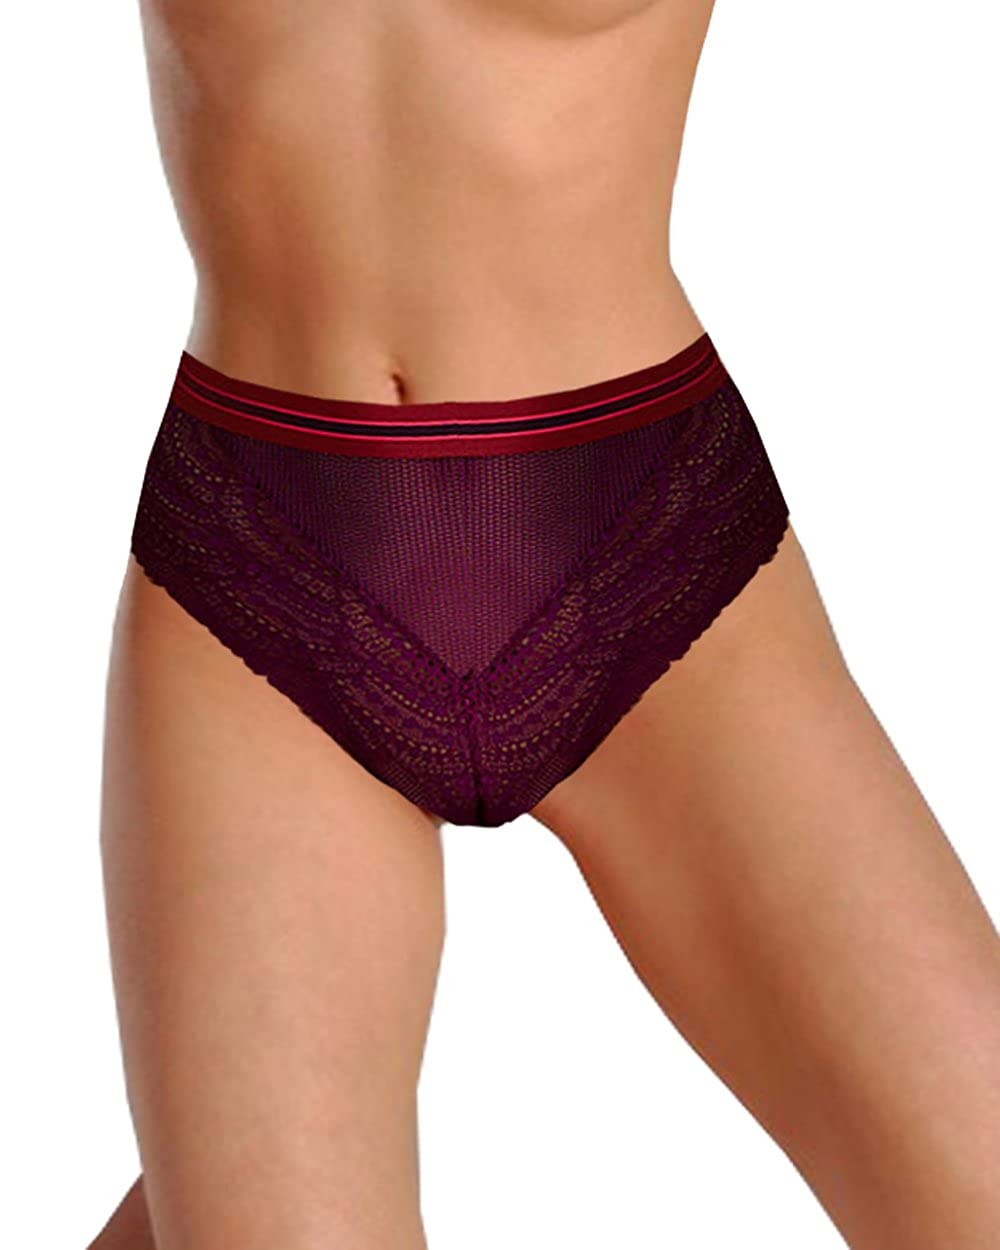 355149f48027 Victorias Secrets Very Sexy Banded High-Waist Cheeky Panty Purple Small at  Amazon Women's Clothing store: